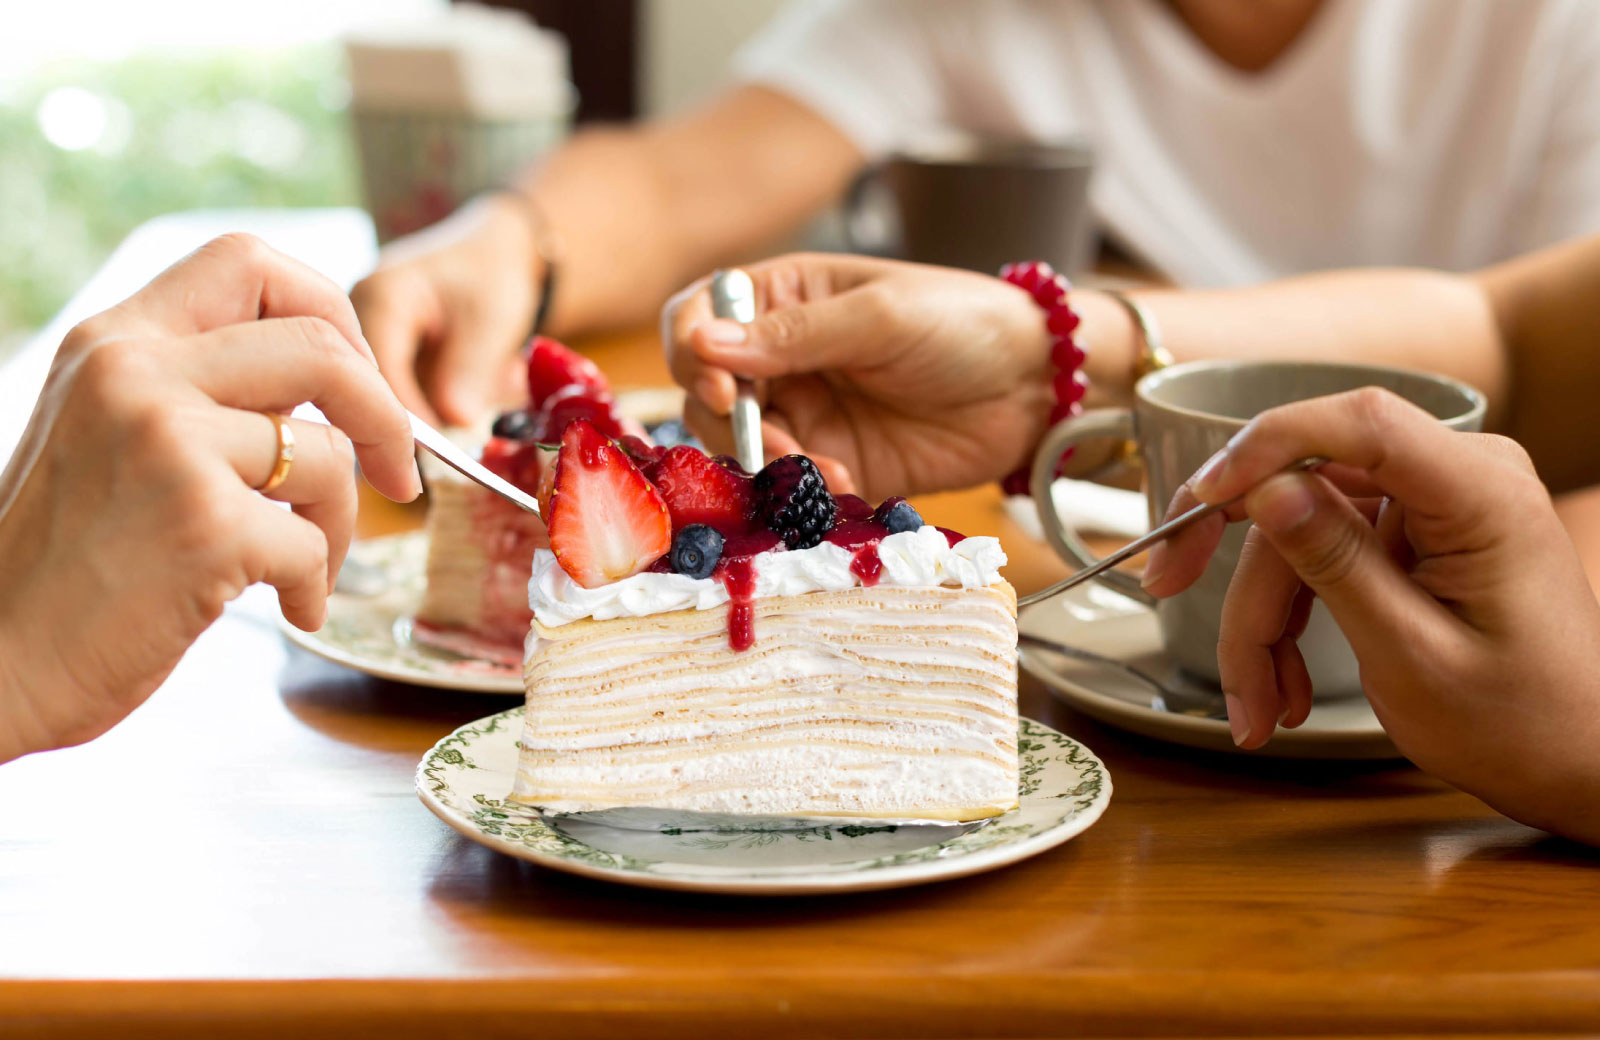 people sharing a slice of cake